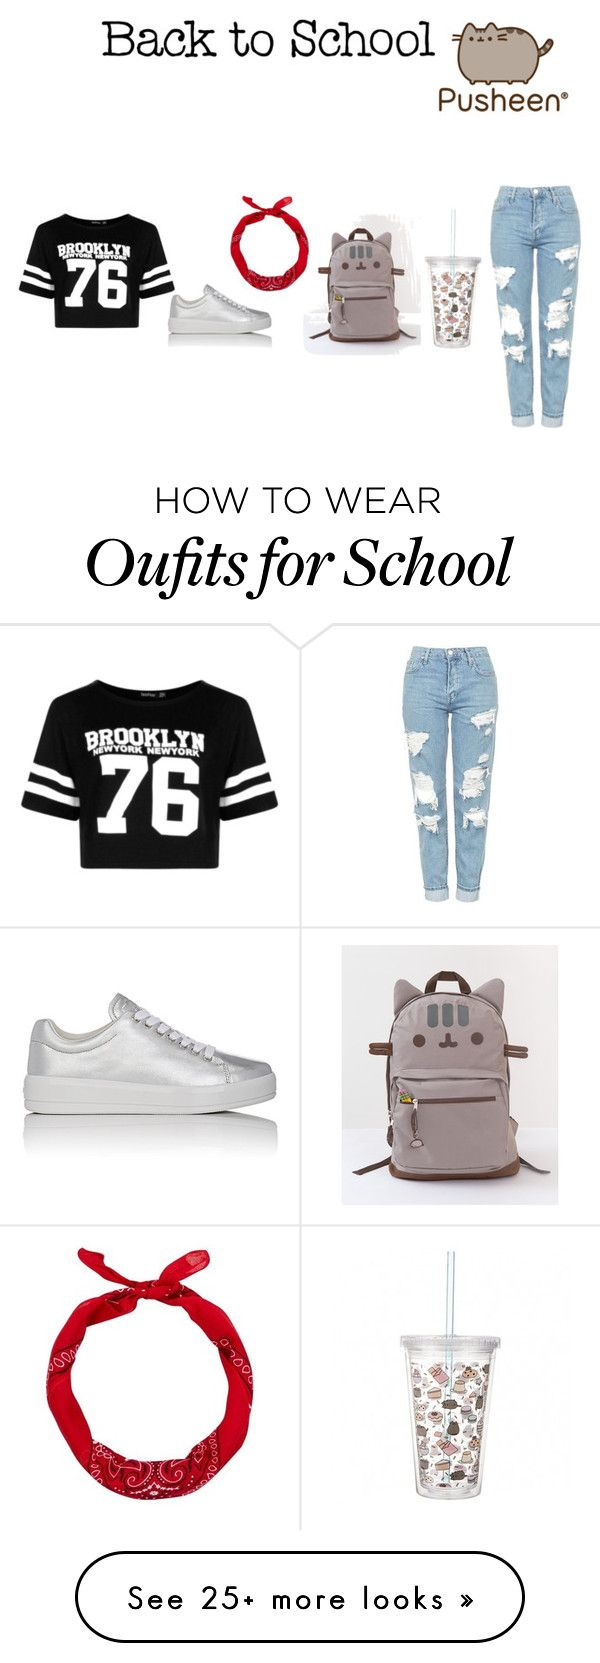 """Back To School"" by oneofthedirectioners on Polyvore featuring Pusheen, Boohoo, Topshop, Prada Sport, New Look, contestentry and PVxPusheen"